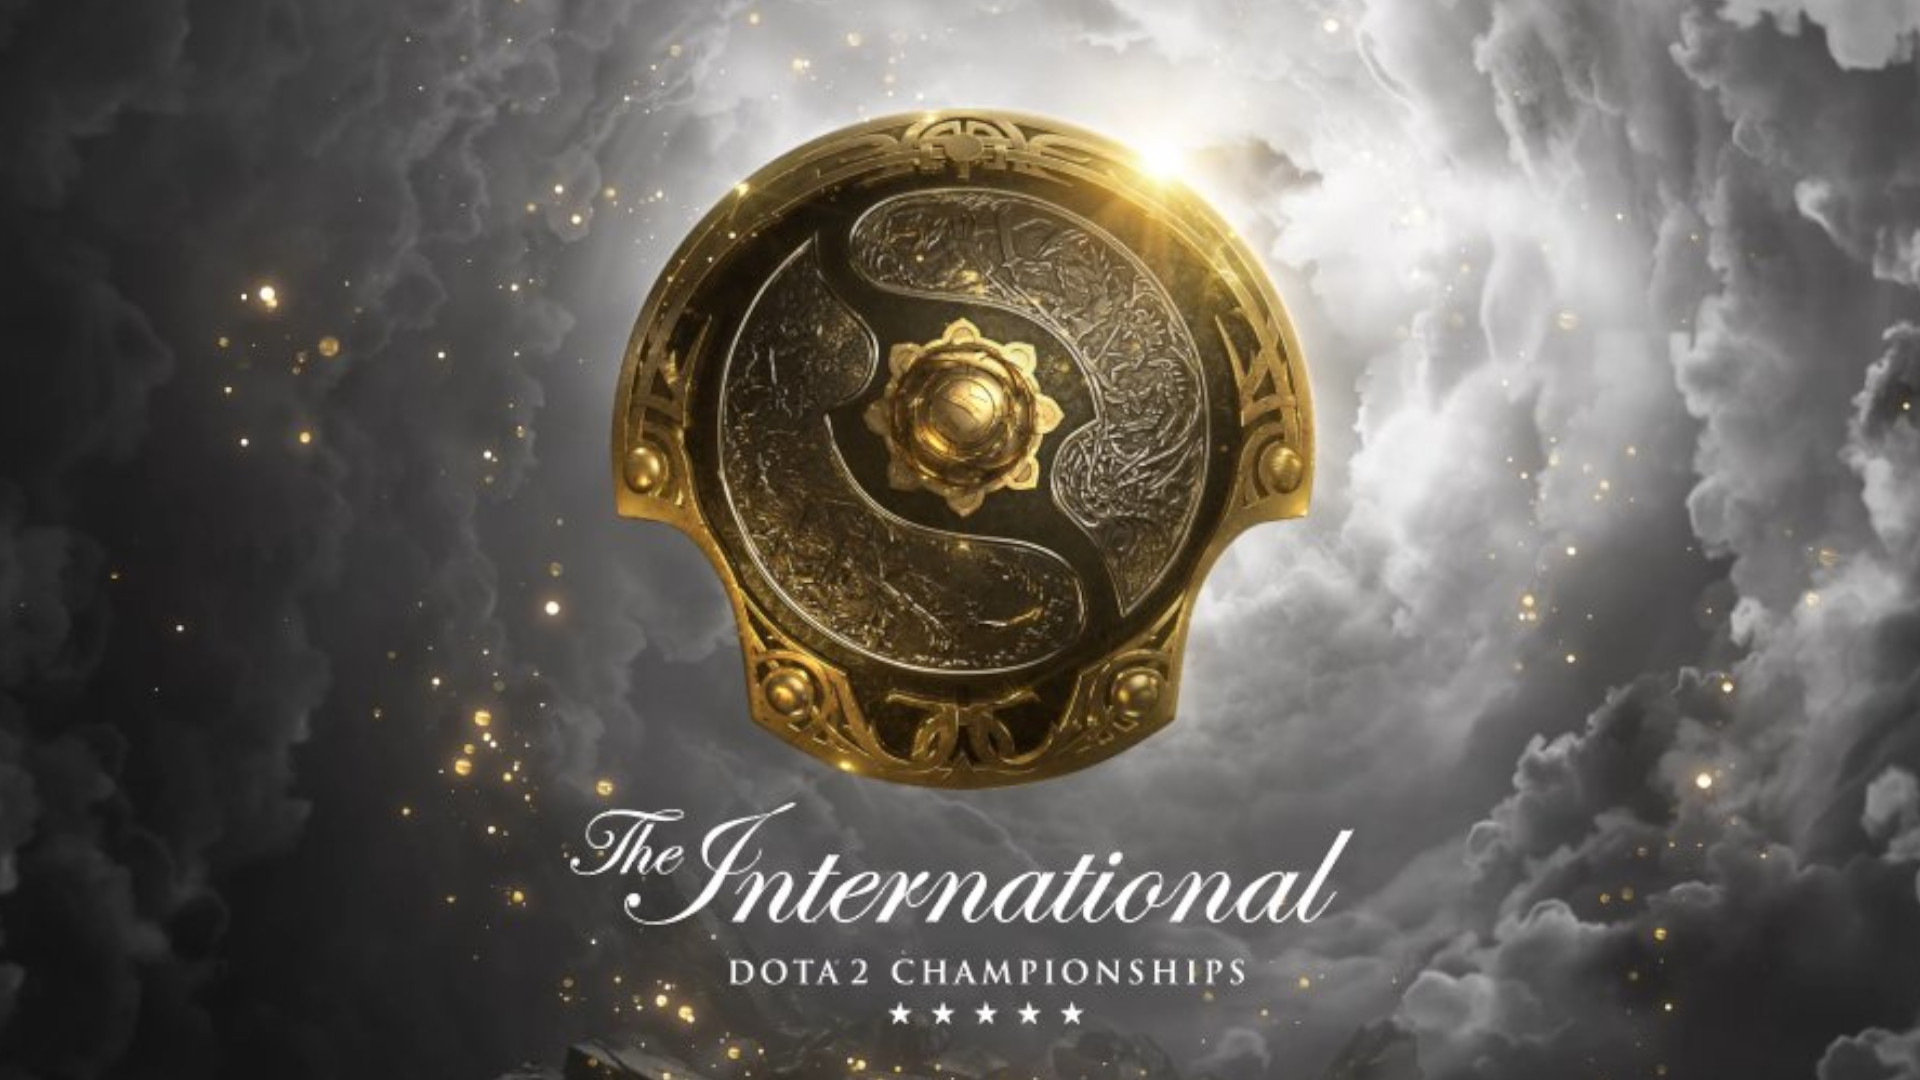 Dota 2's The International gets new dates after Sweden says no to esports